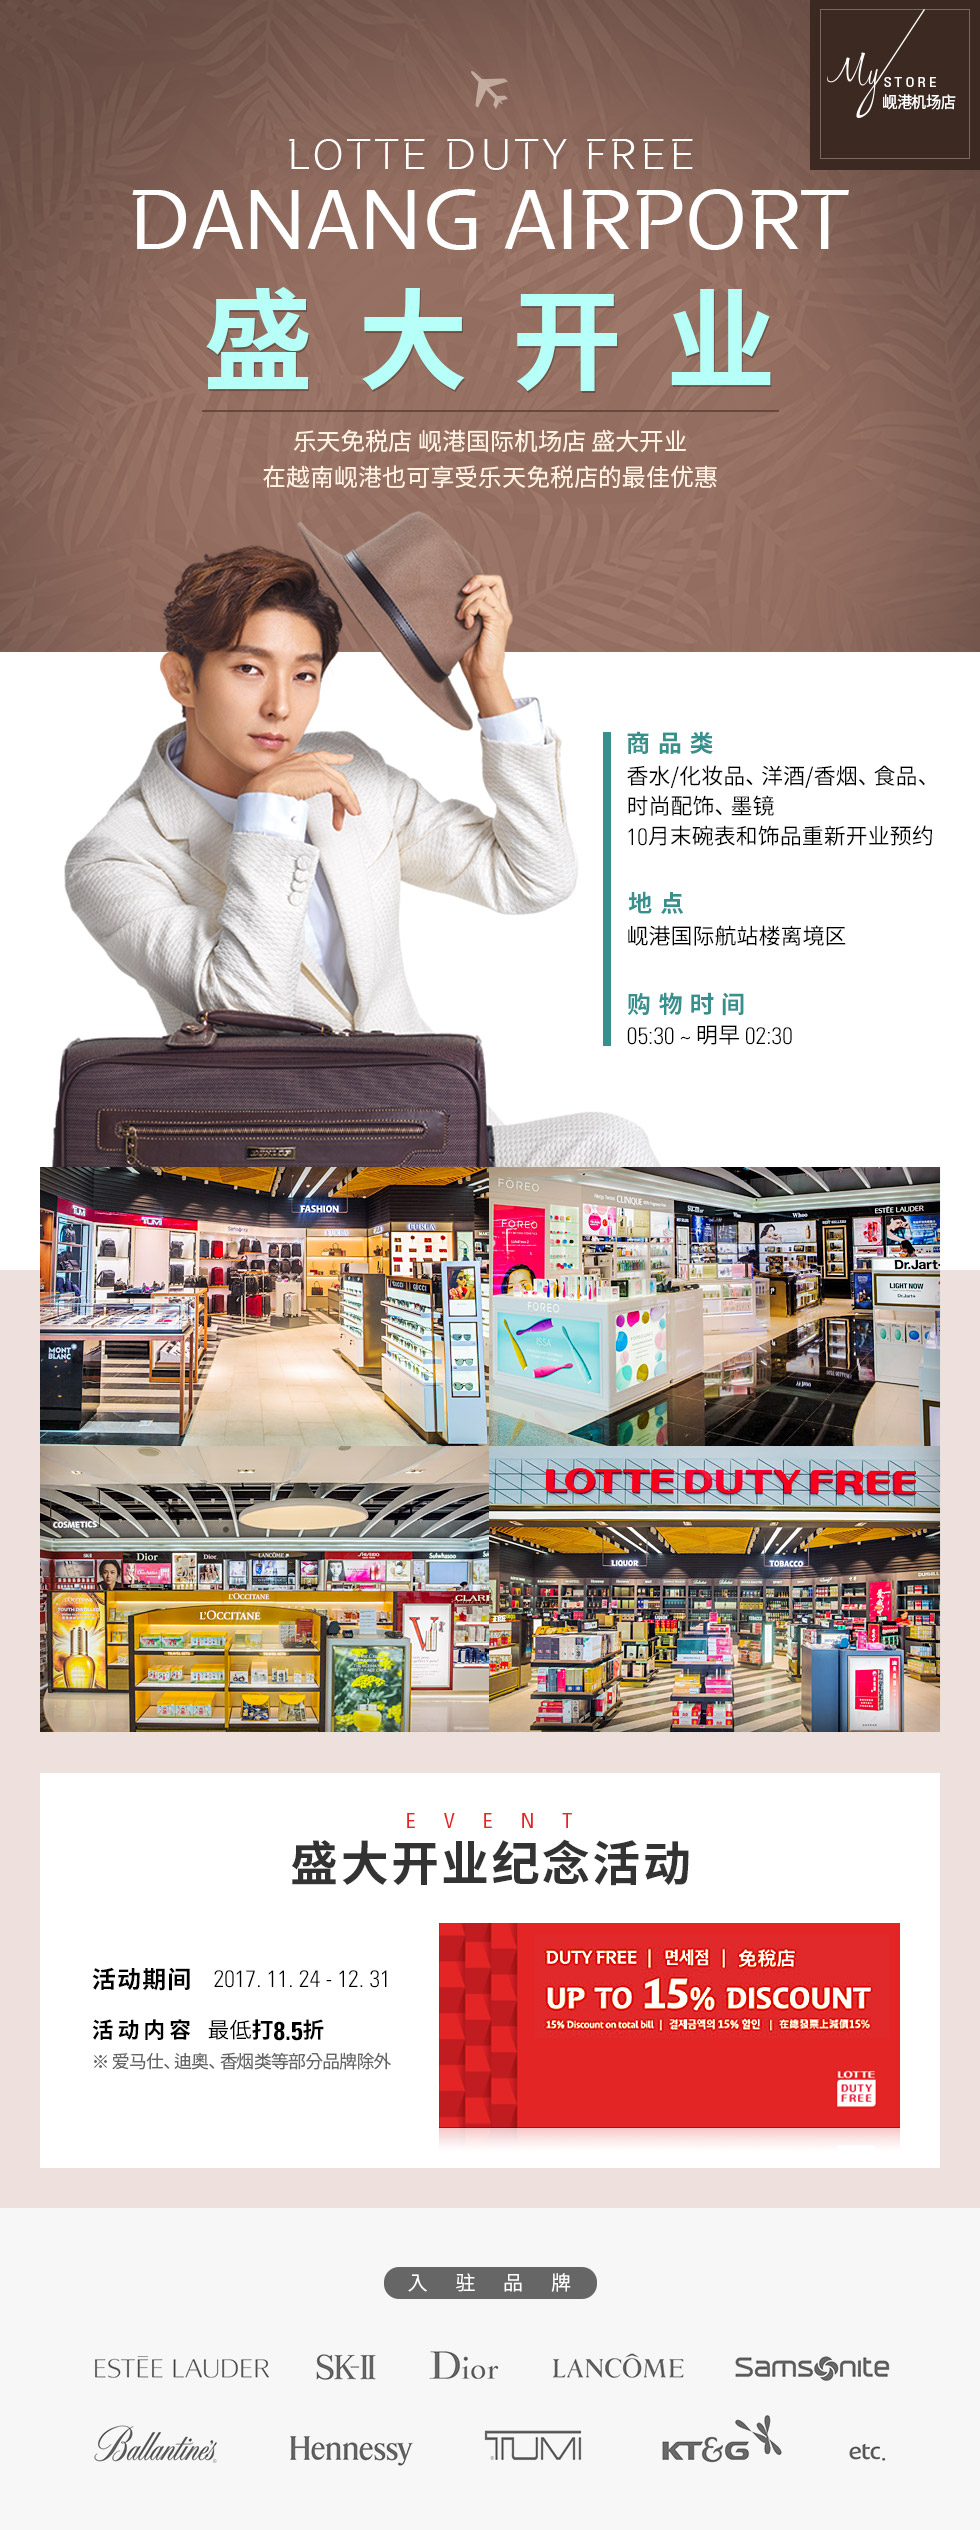 LOTTE DUTY FREE DANANG AIRPORT 盛大开业